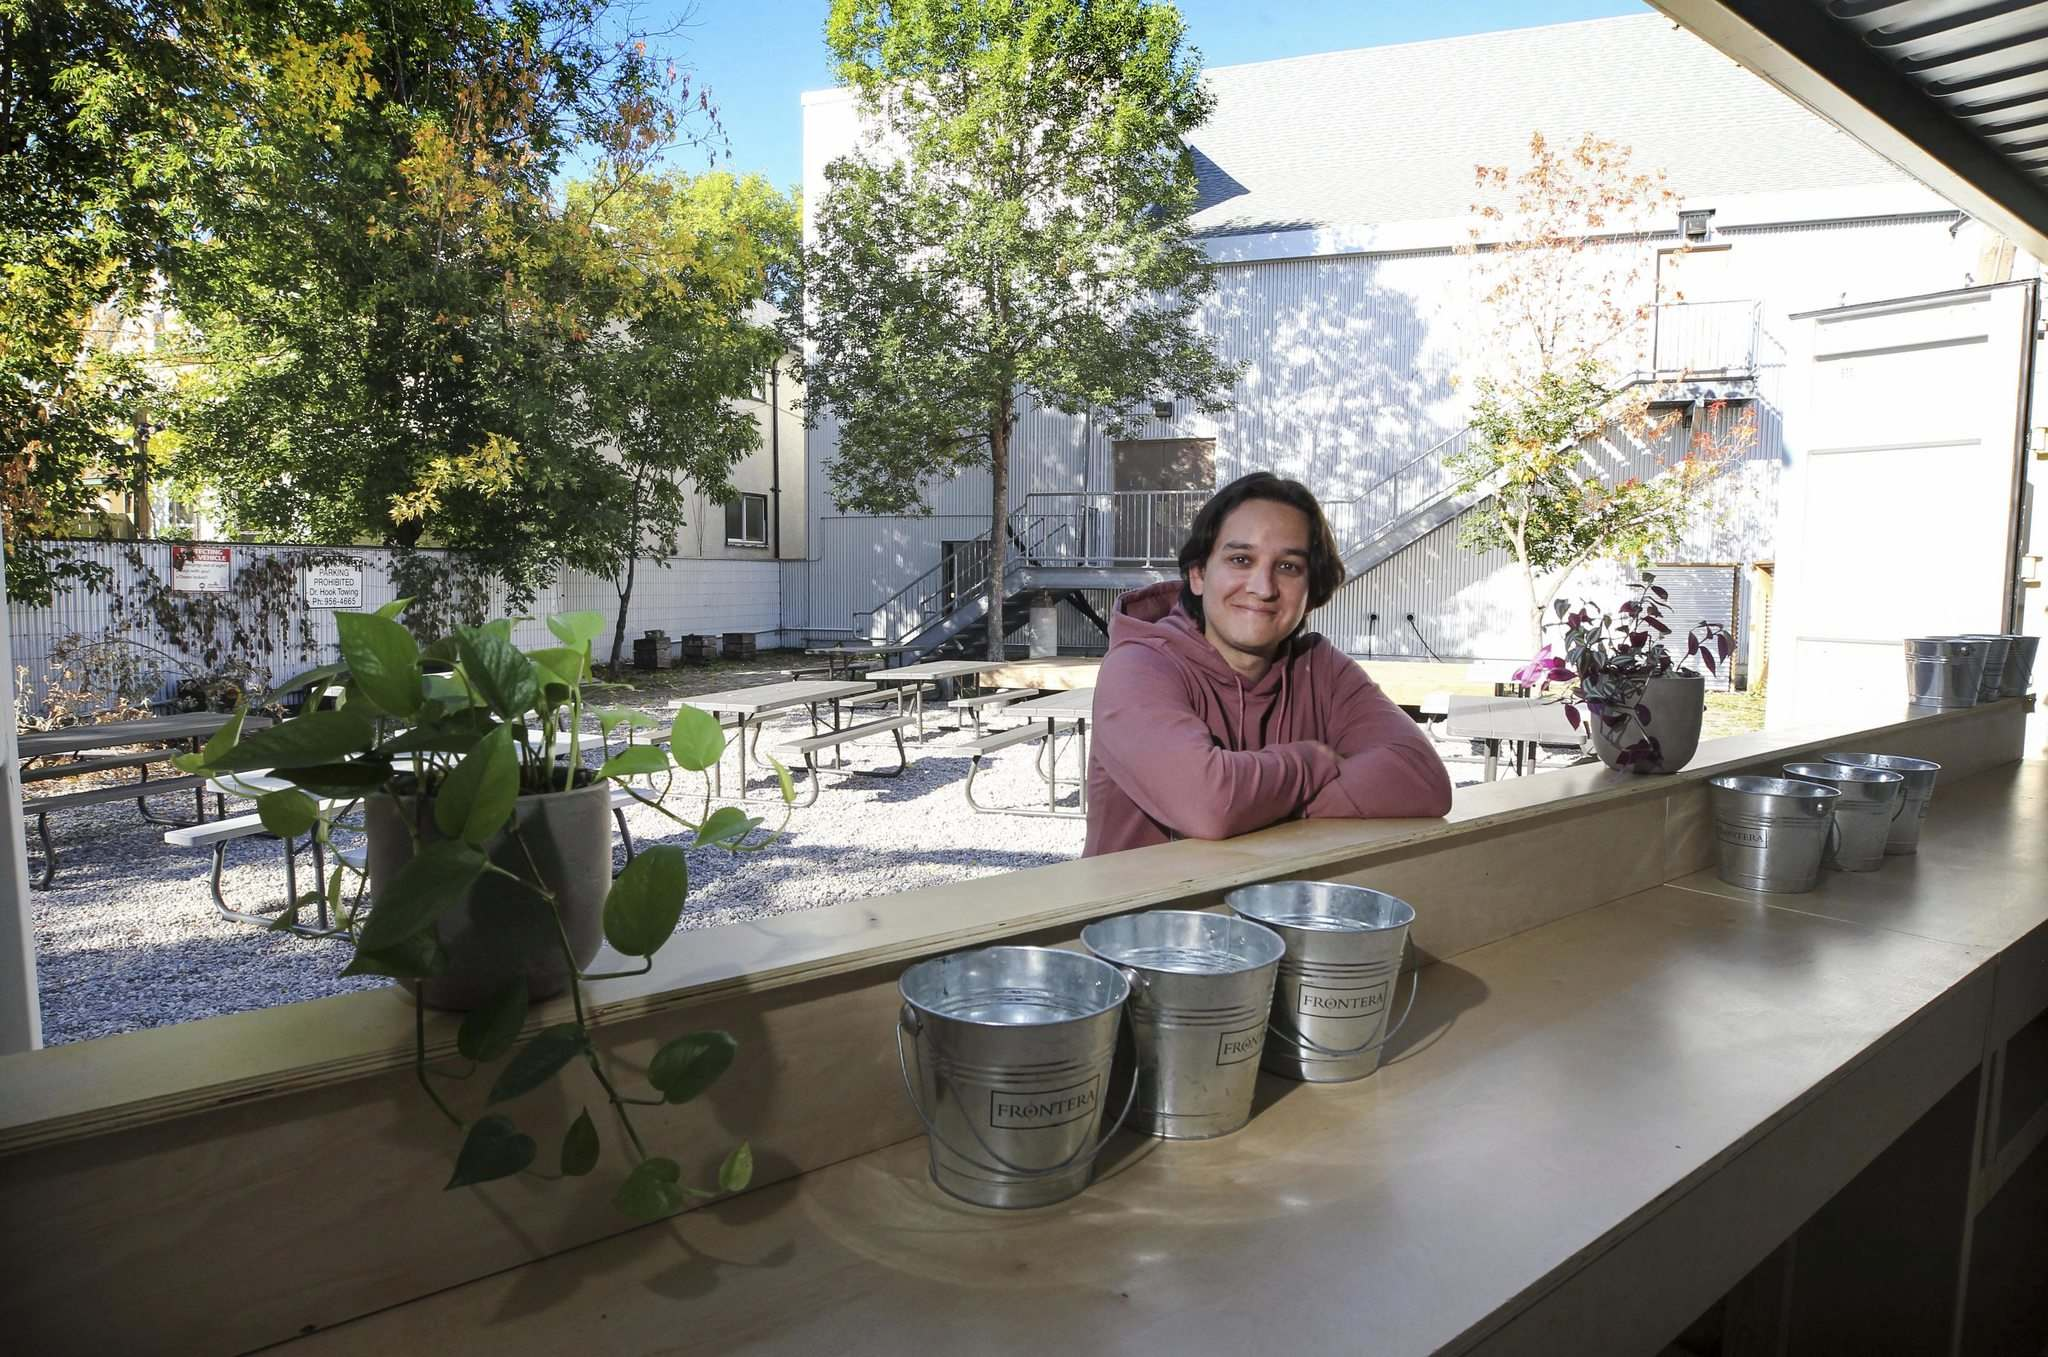 The WECC's community focus sets it apart from other pop-up bars, says artistic director Jorge Requena Ramos. (Ruth Bonneville / Winnipeg Free Press)